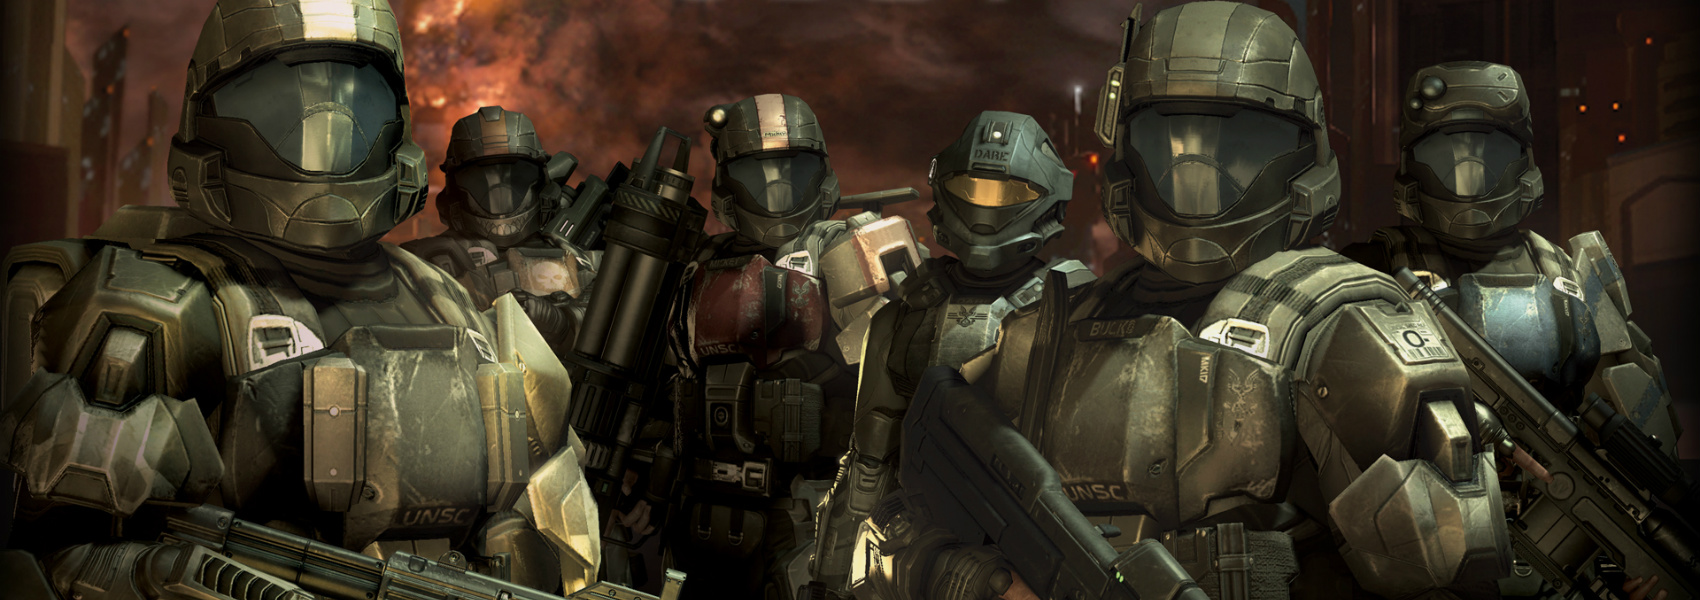 ALPHA-NINE - Alpha-Nine was originally a squad of ODSTs during the Human-Covenant War, but all received augmentations to become Spartan-IVs between the end of the war and the Rule of the Created.